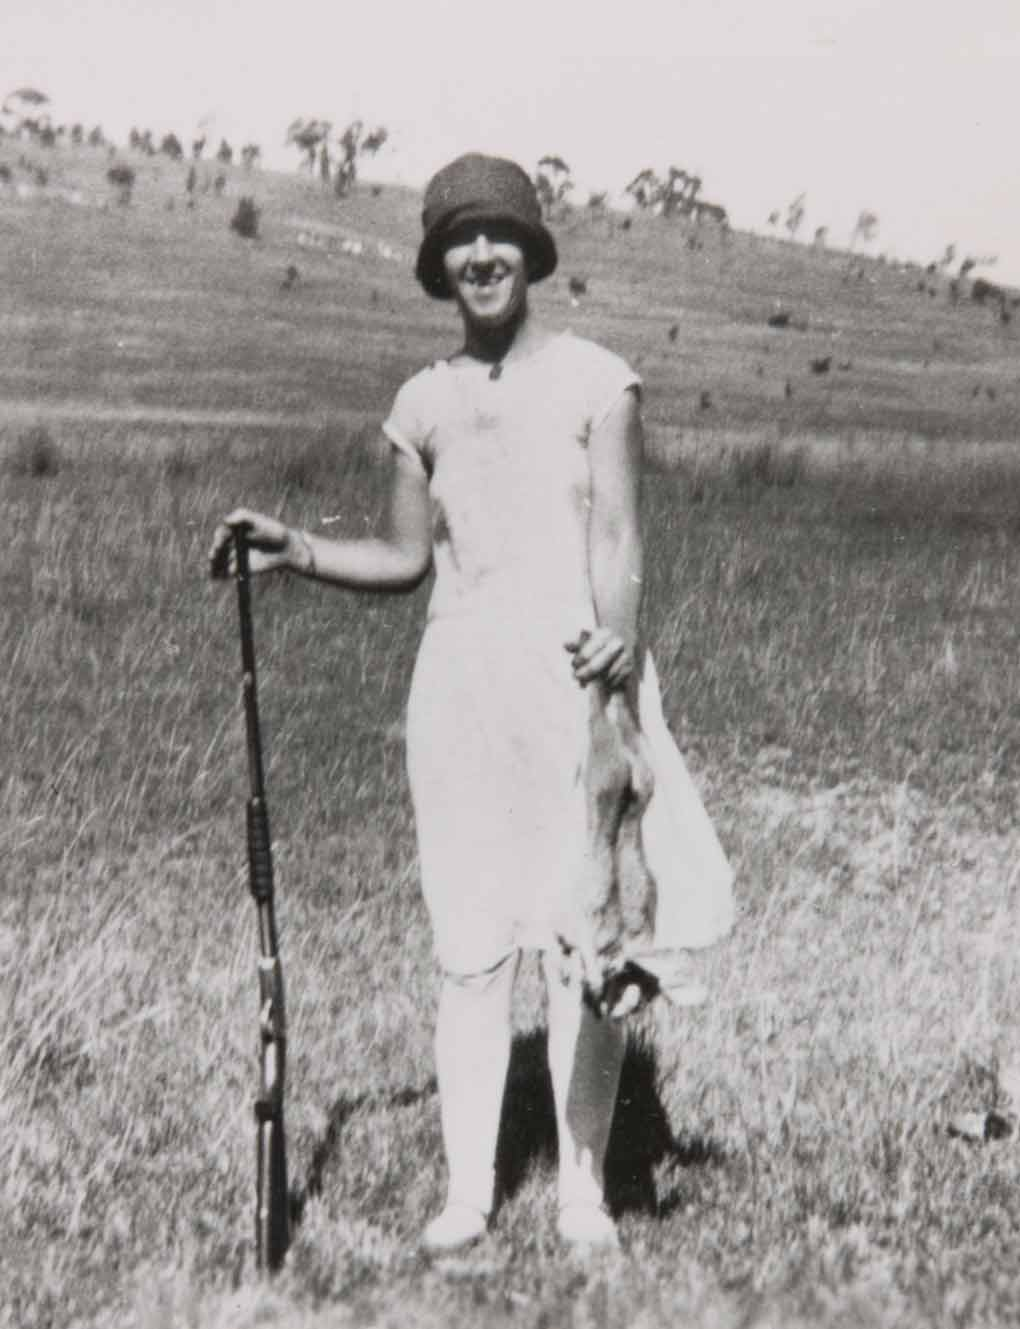 Photograph of a lady at Bathurst NSW in the 1920s with a gun in her right hand and holding a dead rabbit in her left - click to view larger image